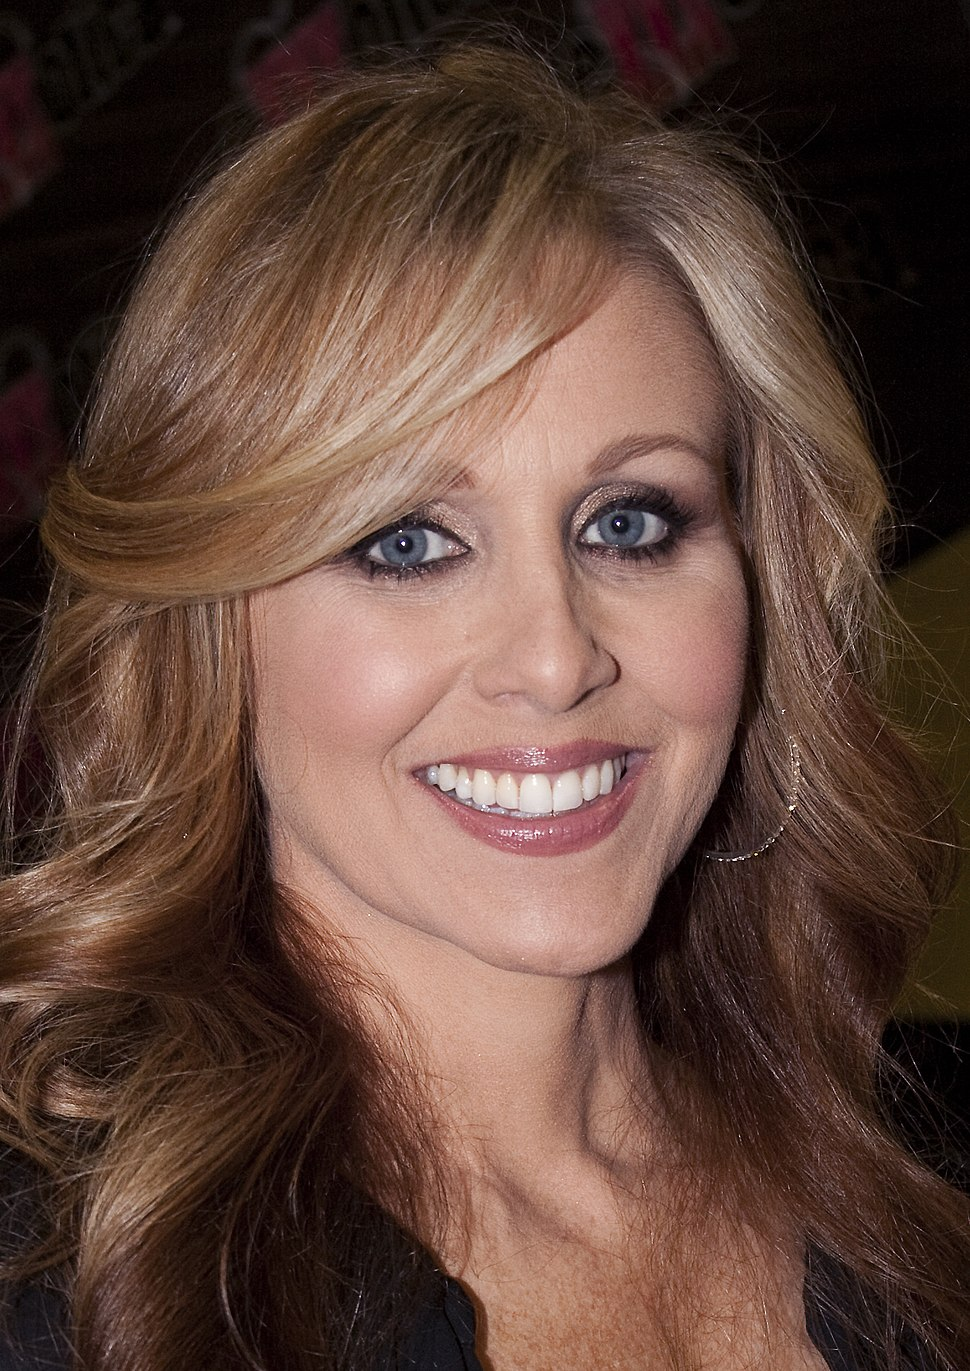 Julia Ann, 2014 (cropped)